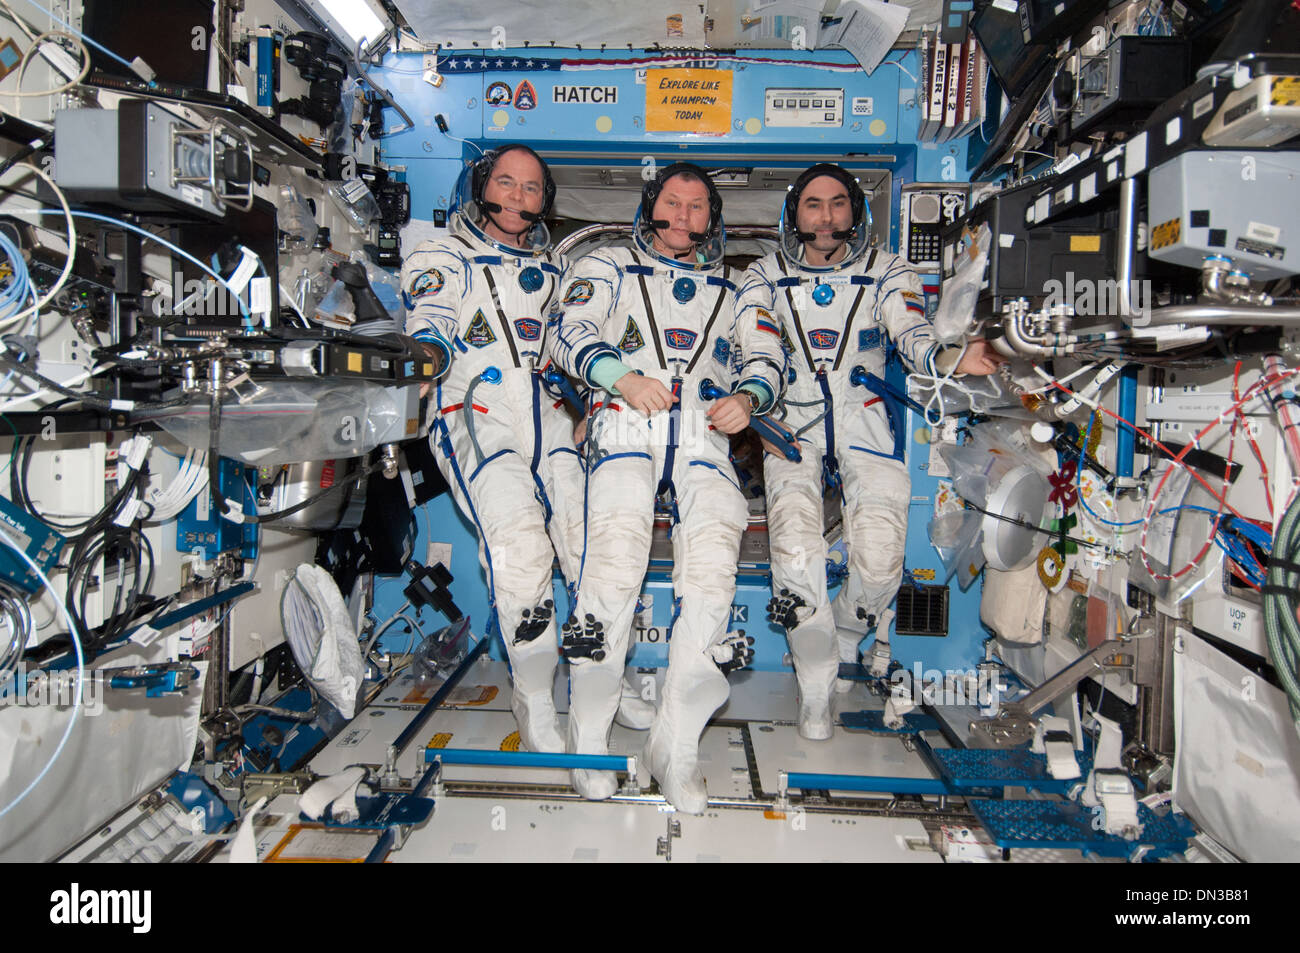 Expedition 34 Crew Members onboard International Space Station Sokol suits U.S. Laboratory Destiny NASA astronaut cosmonaut - Stock Image